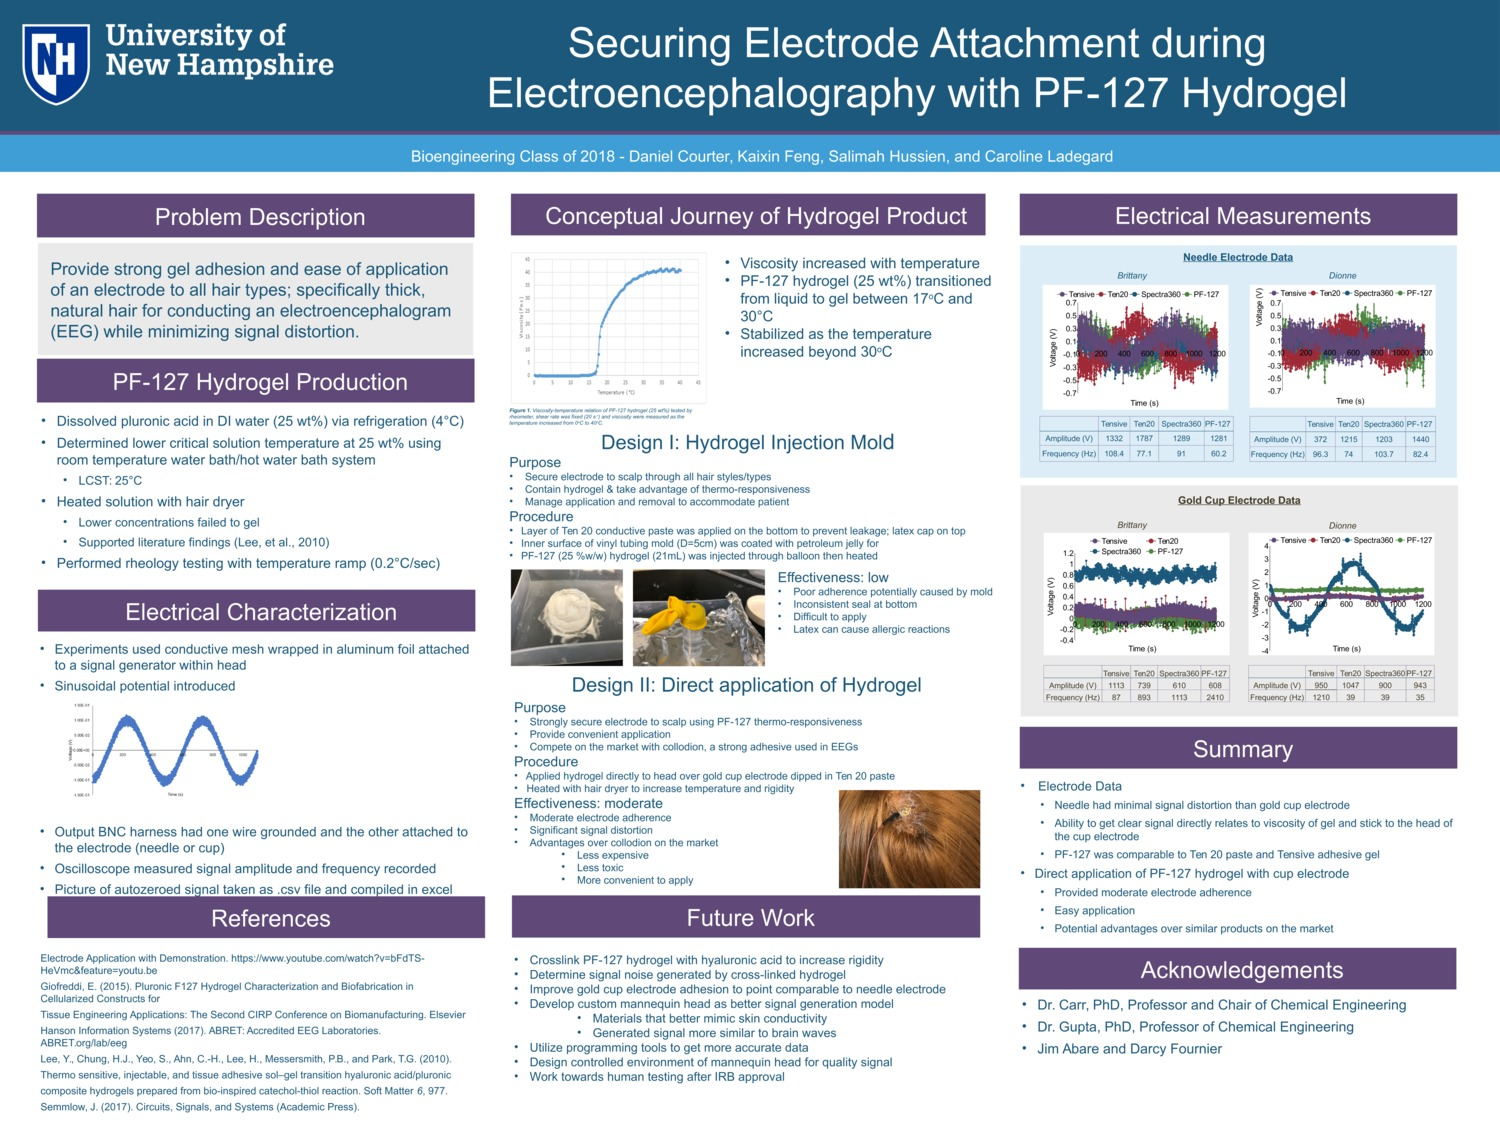 Securing Electrode Attachment During Electroencephalography With Pf-127 Hydrogel by djc2007